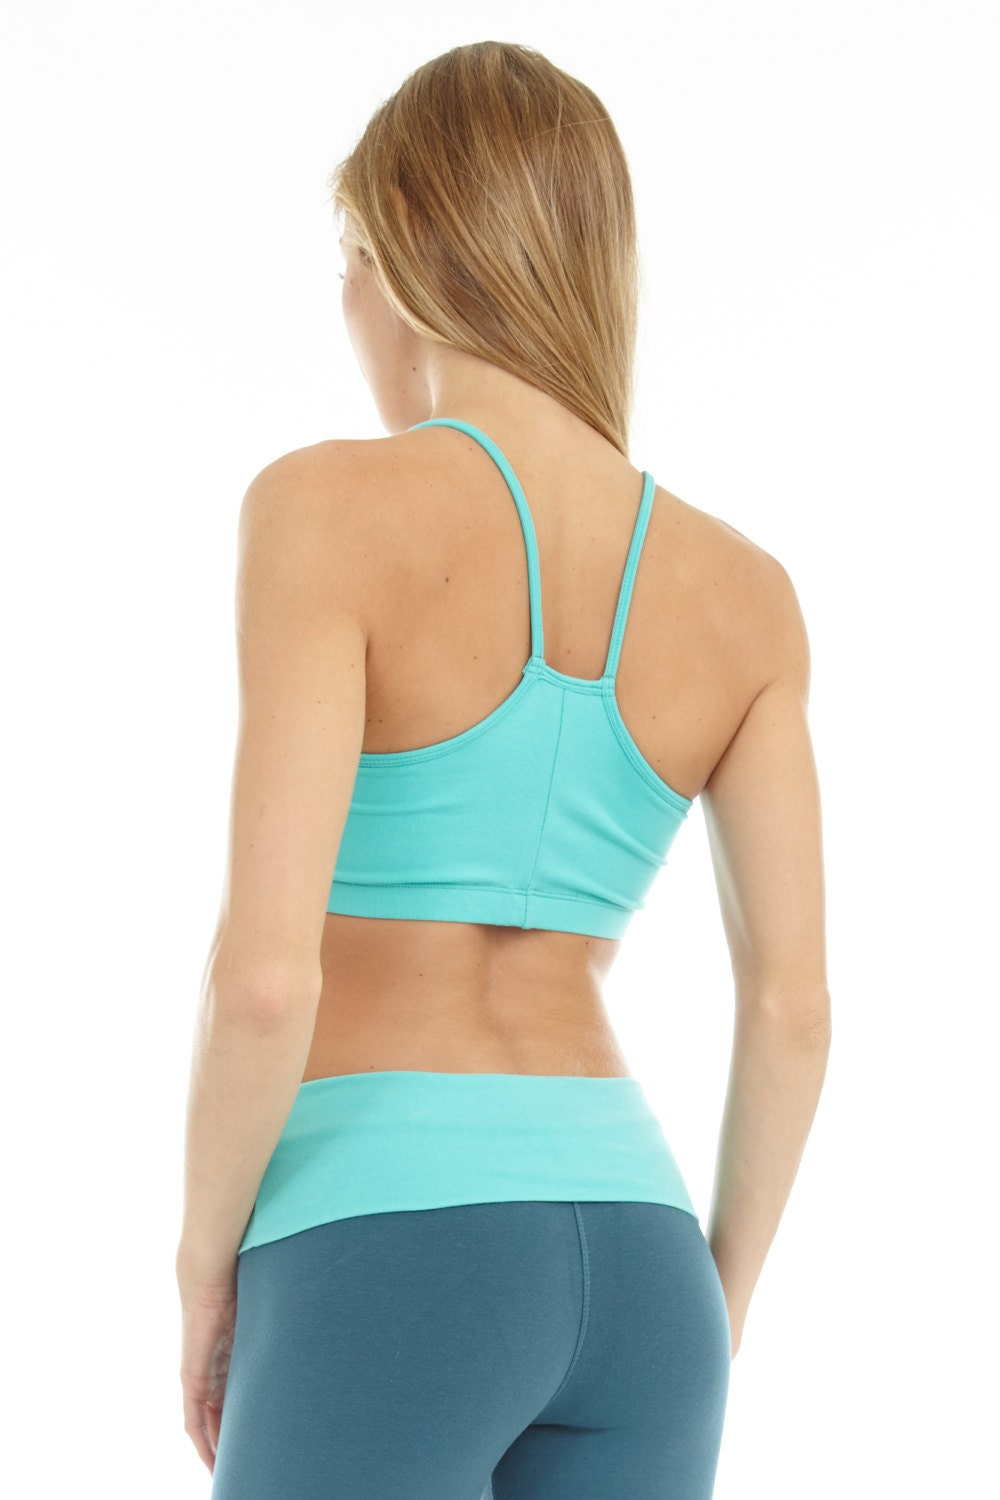 Ladies Sports sportworlds.gq-impact support ideal for yoga, pilates or AKAMC Women's Removable Padded Sports Bras Medium Support Workout Yoga Bra 3 Pack. by AKAMC. $ - $ $ 18 $ 20 99 Prime. FREE Shipping on eligible orders. Some sizes/colors are Prime eligible. out of 5 stars